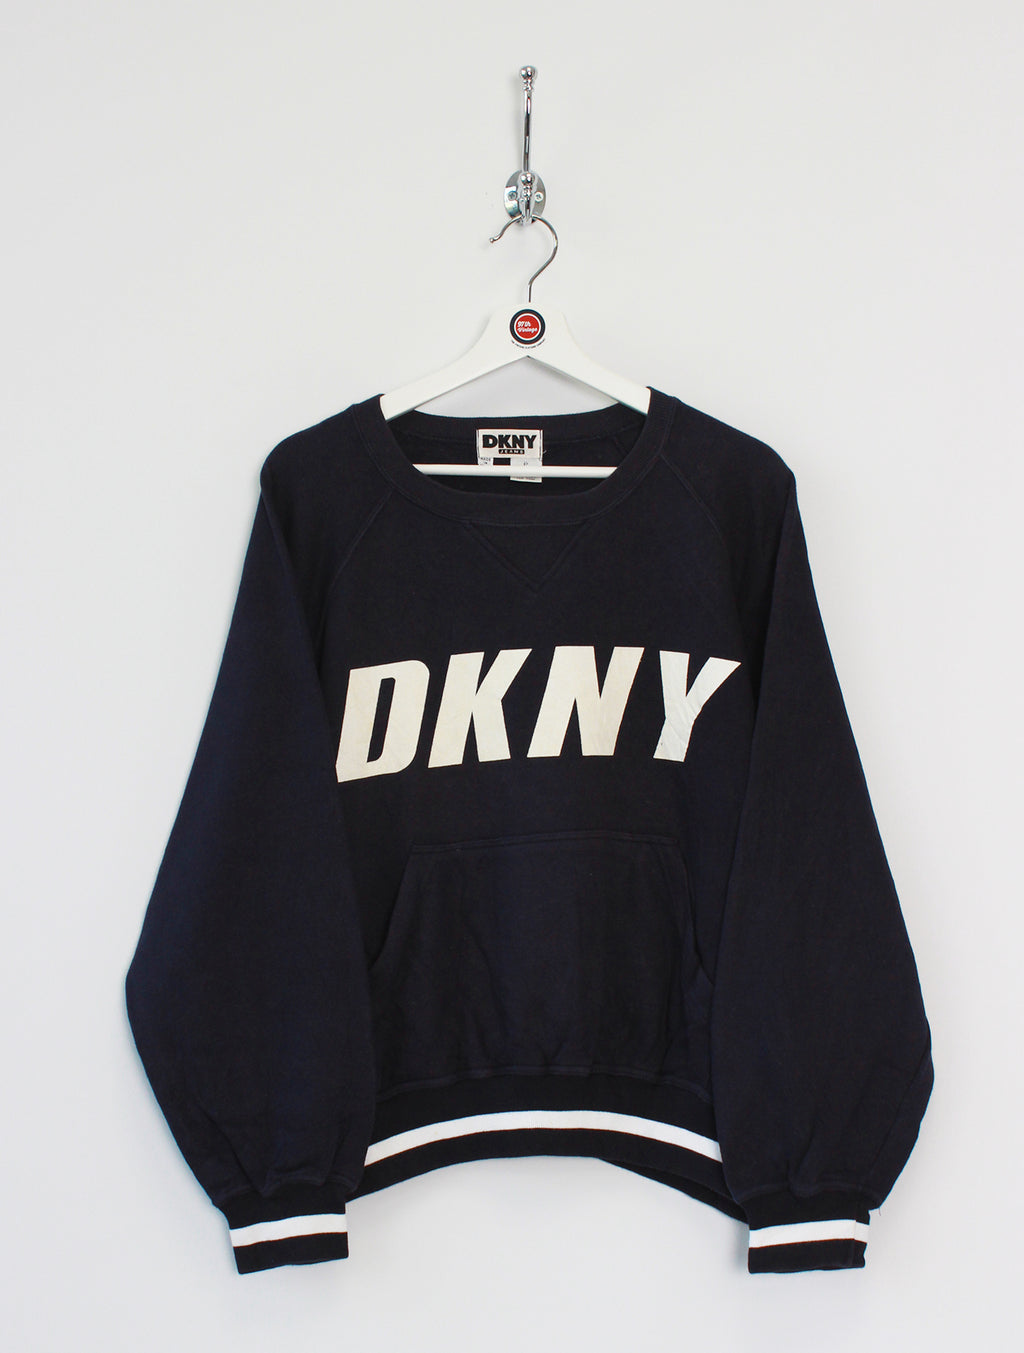 DKNY Sweatshirt (XL)